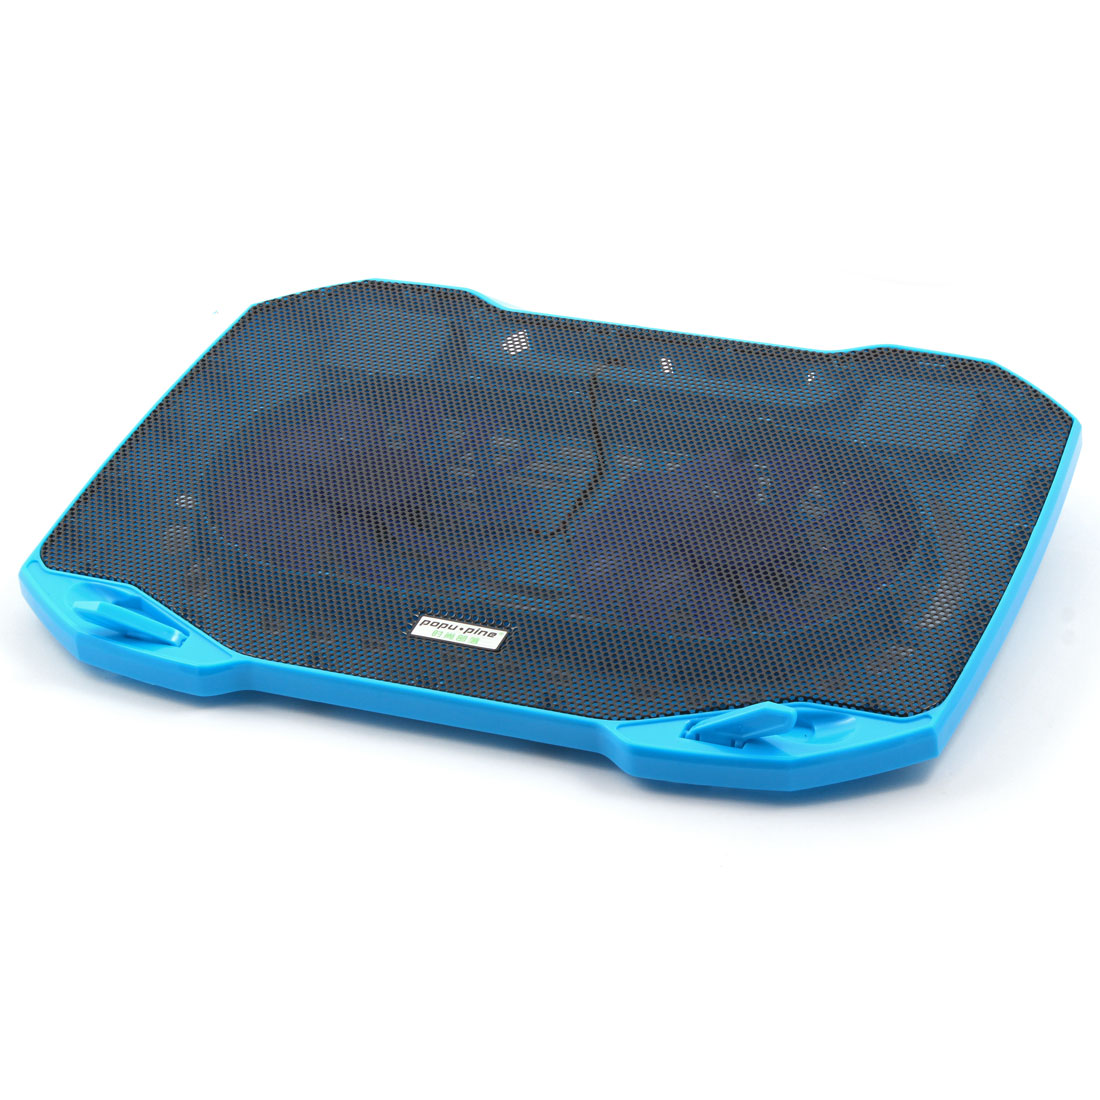 F2 PC Quiet Airflow Radiator Cooling Pad w Double Cooling Fans Blue for 14 Inch Laptop